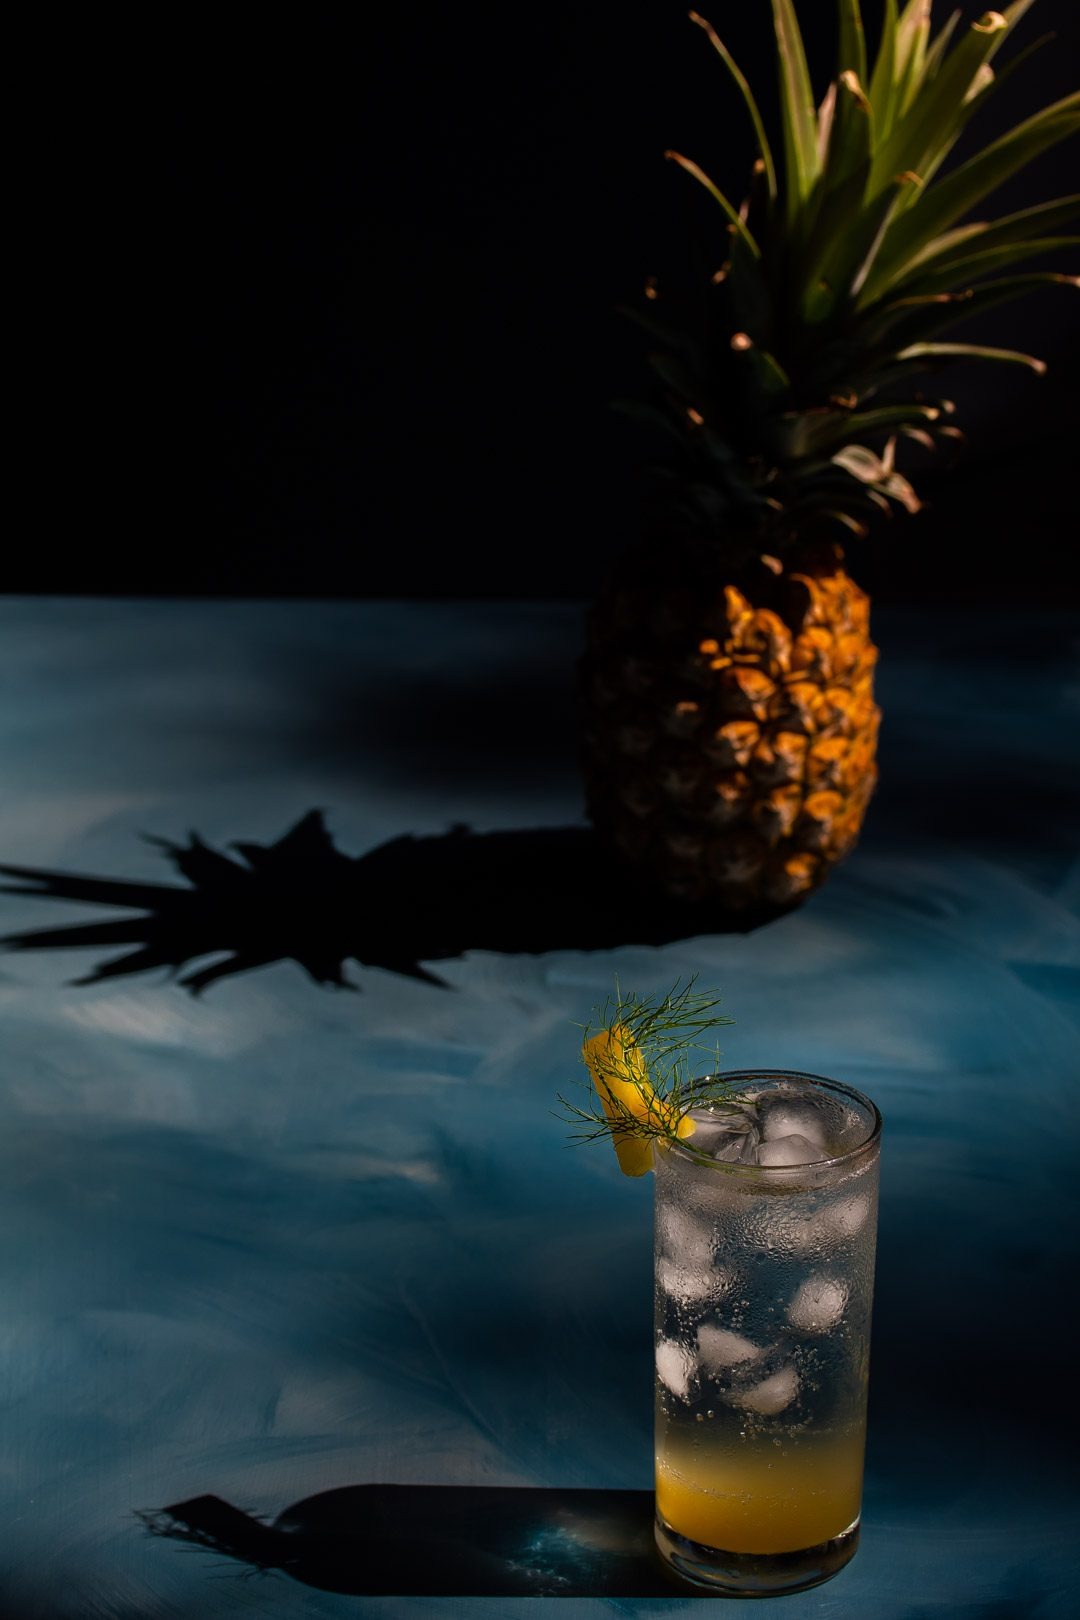 pineapple fennel shrub syrup from 45 degrees with pineapple and shadow in background